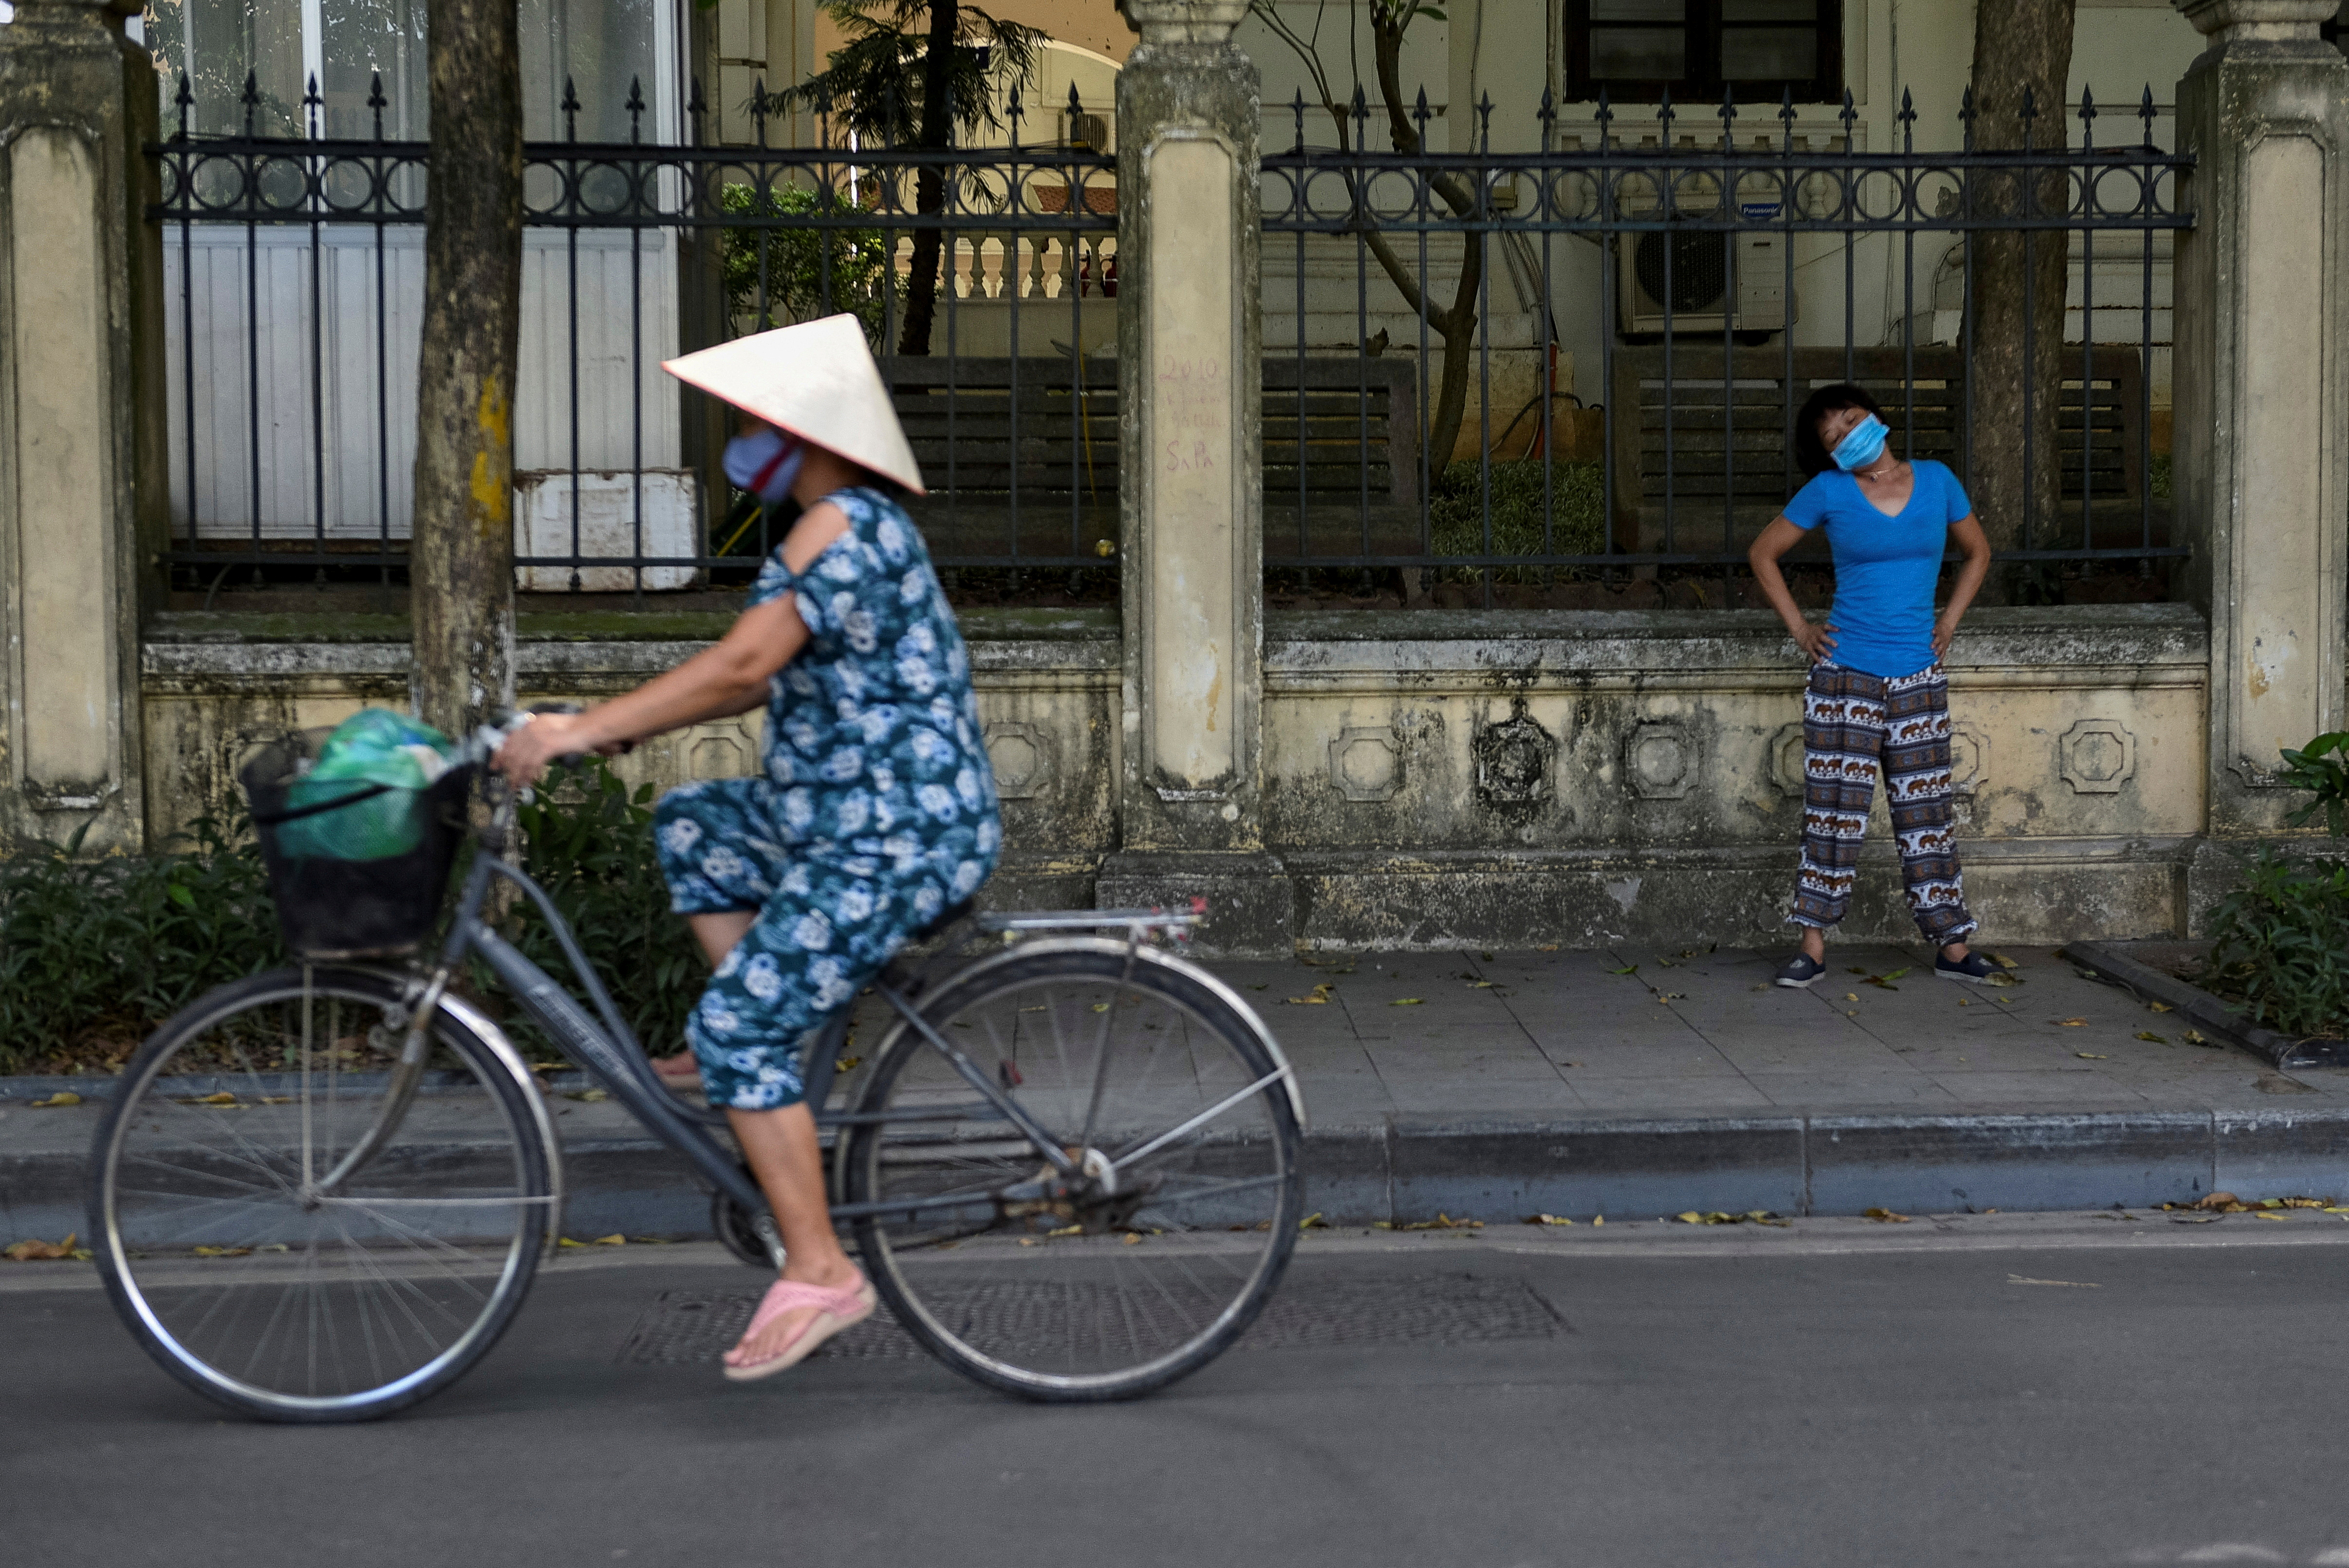 A woman wears a protective mask as she exercises on the street amid the coronavirus (COVID-19) pandemic, in Hanoi, Vietnam, May 31. REUTERS/Thanh Hue